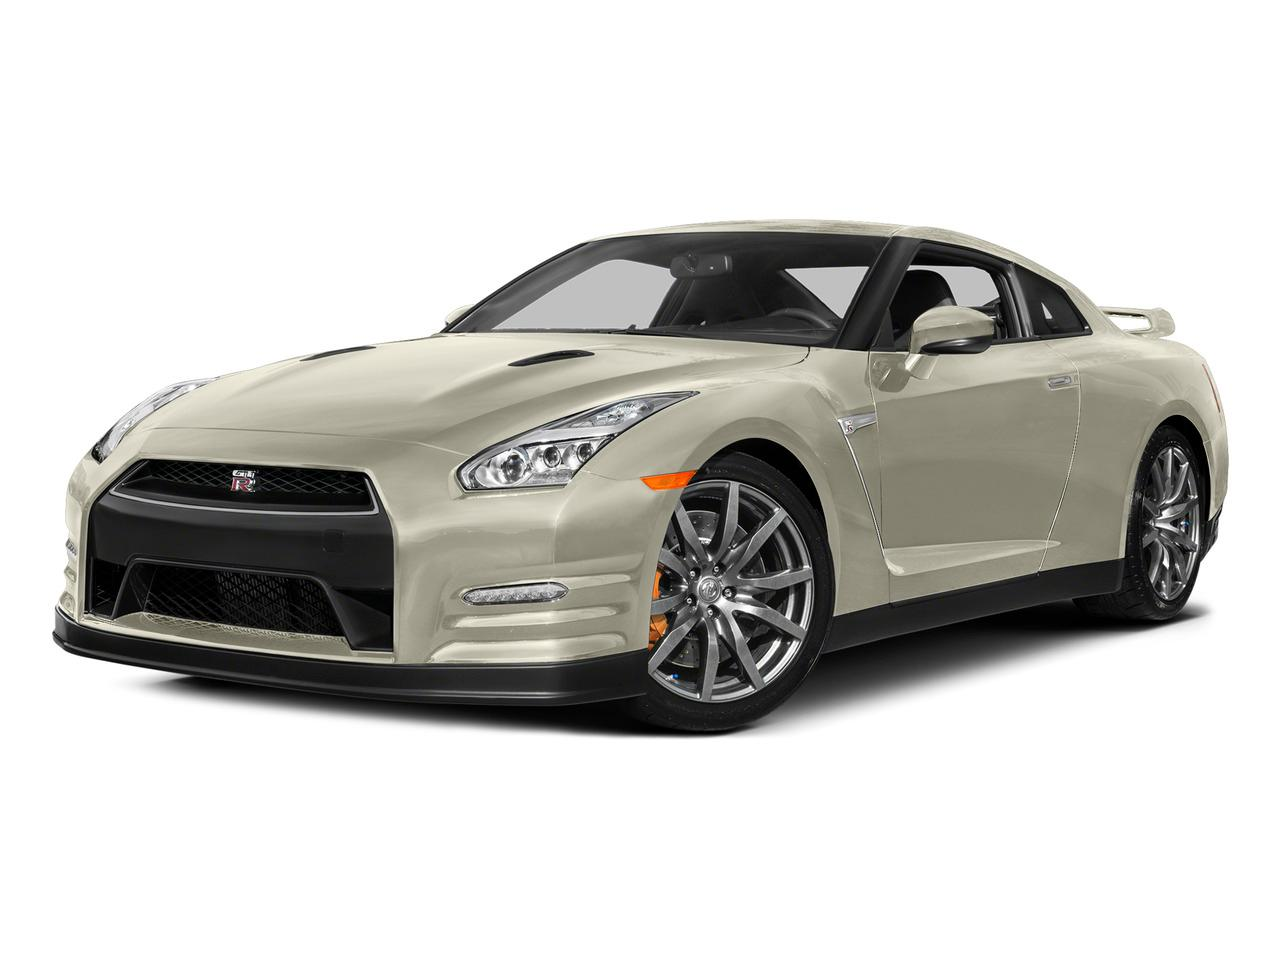 2016 Nissan GT-R Vehicle Photo in Poughkeepsie, NY 12601